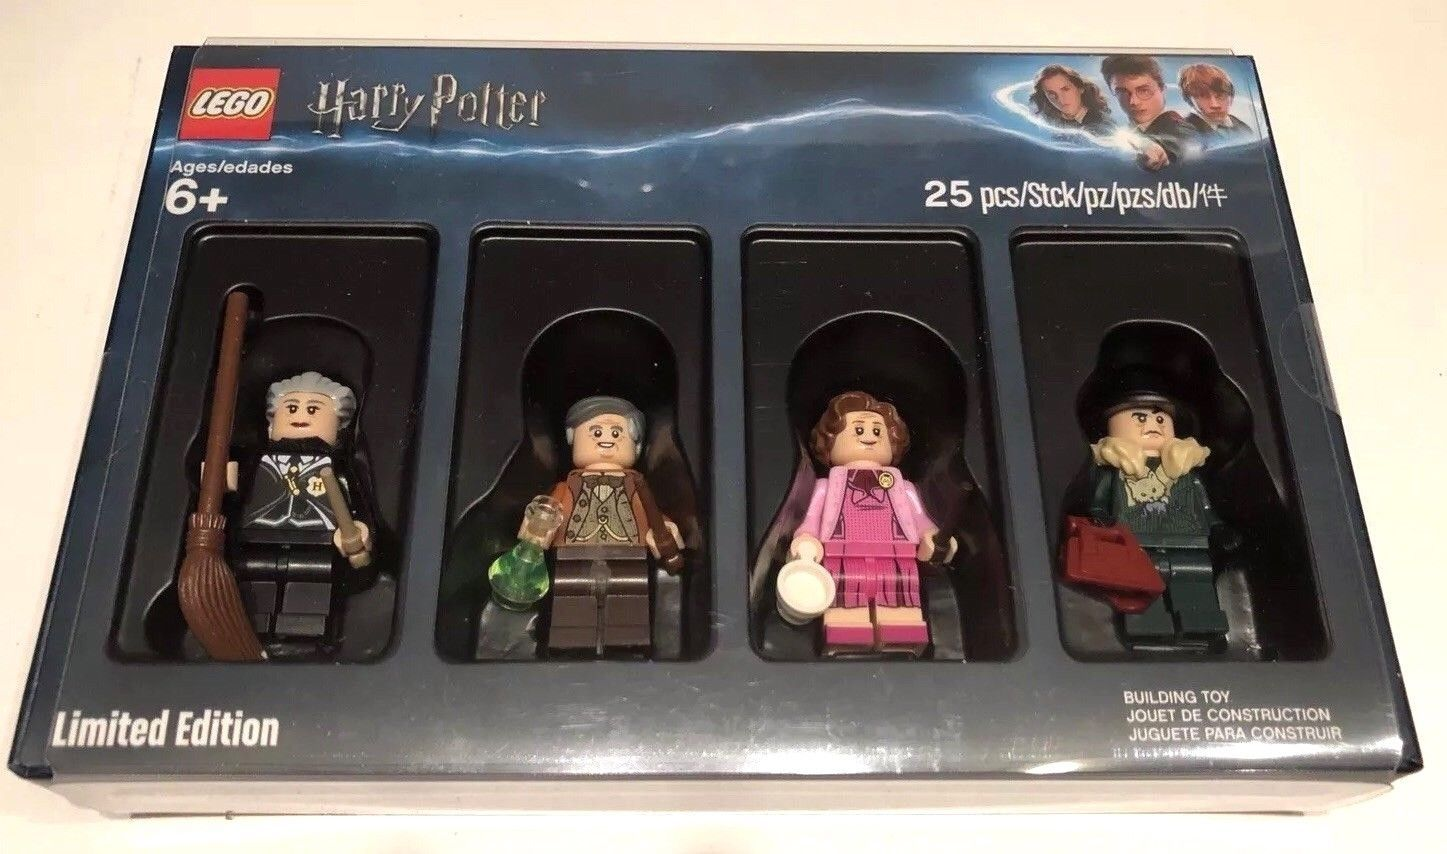 LEGO Harry Potter Bricktober Set Brand New 5005254 /& Sealed Limited Edition Rare